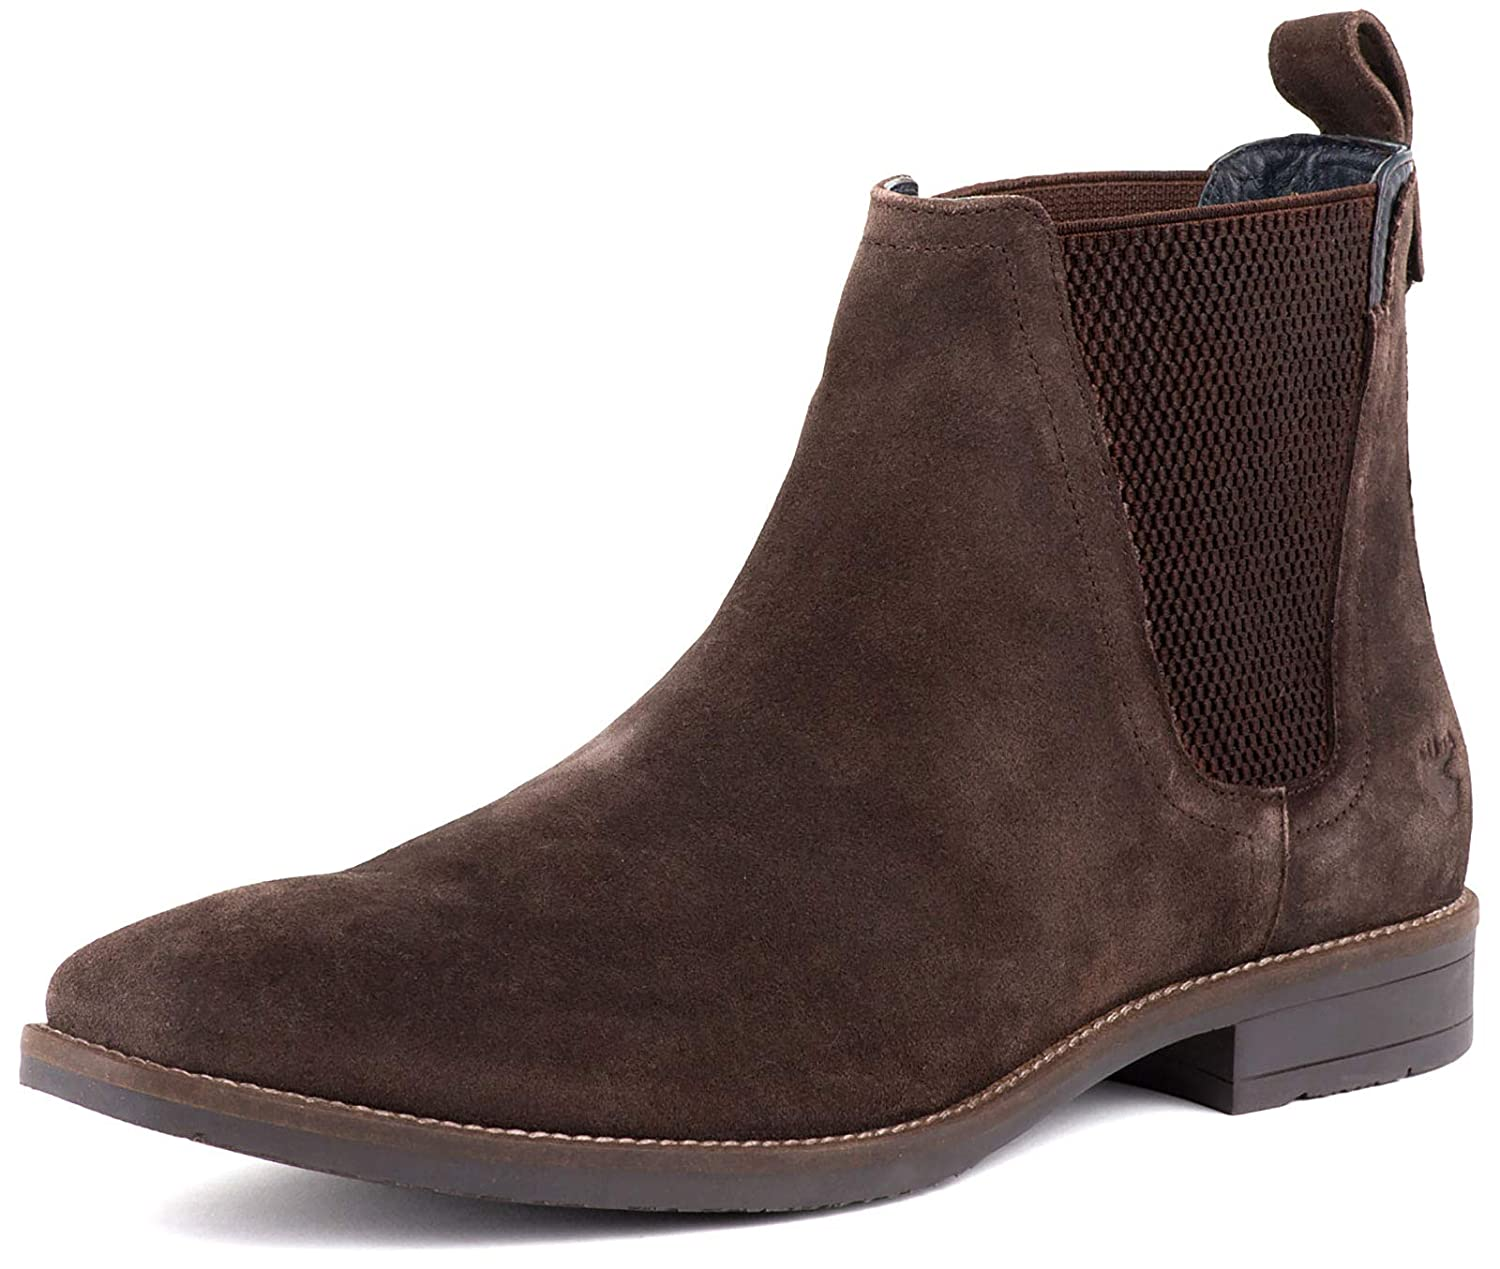 Goodwin Smith Mens FINCHLEY braun Suede Chelsea Stiefel